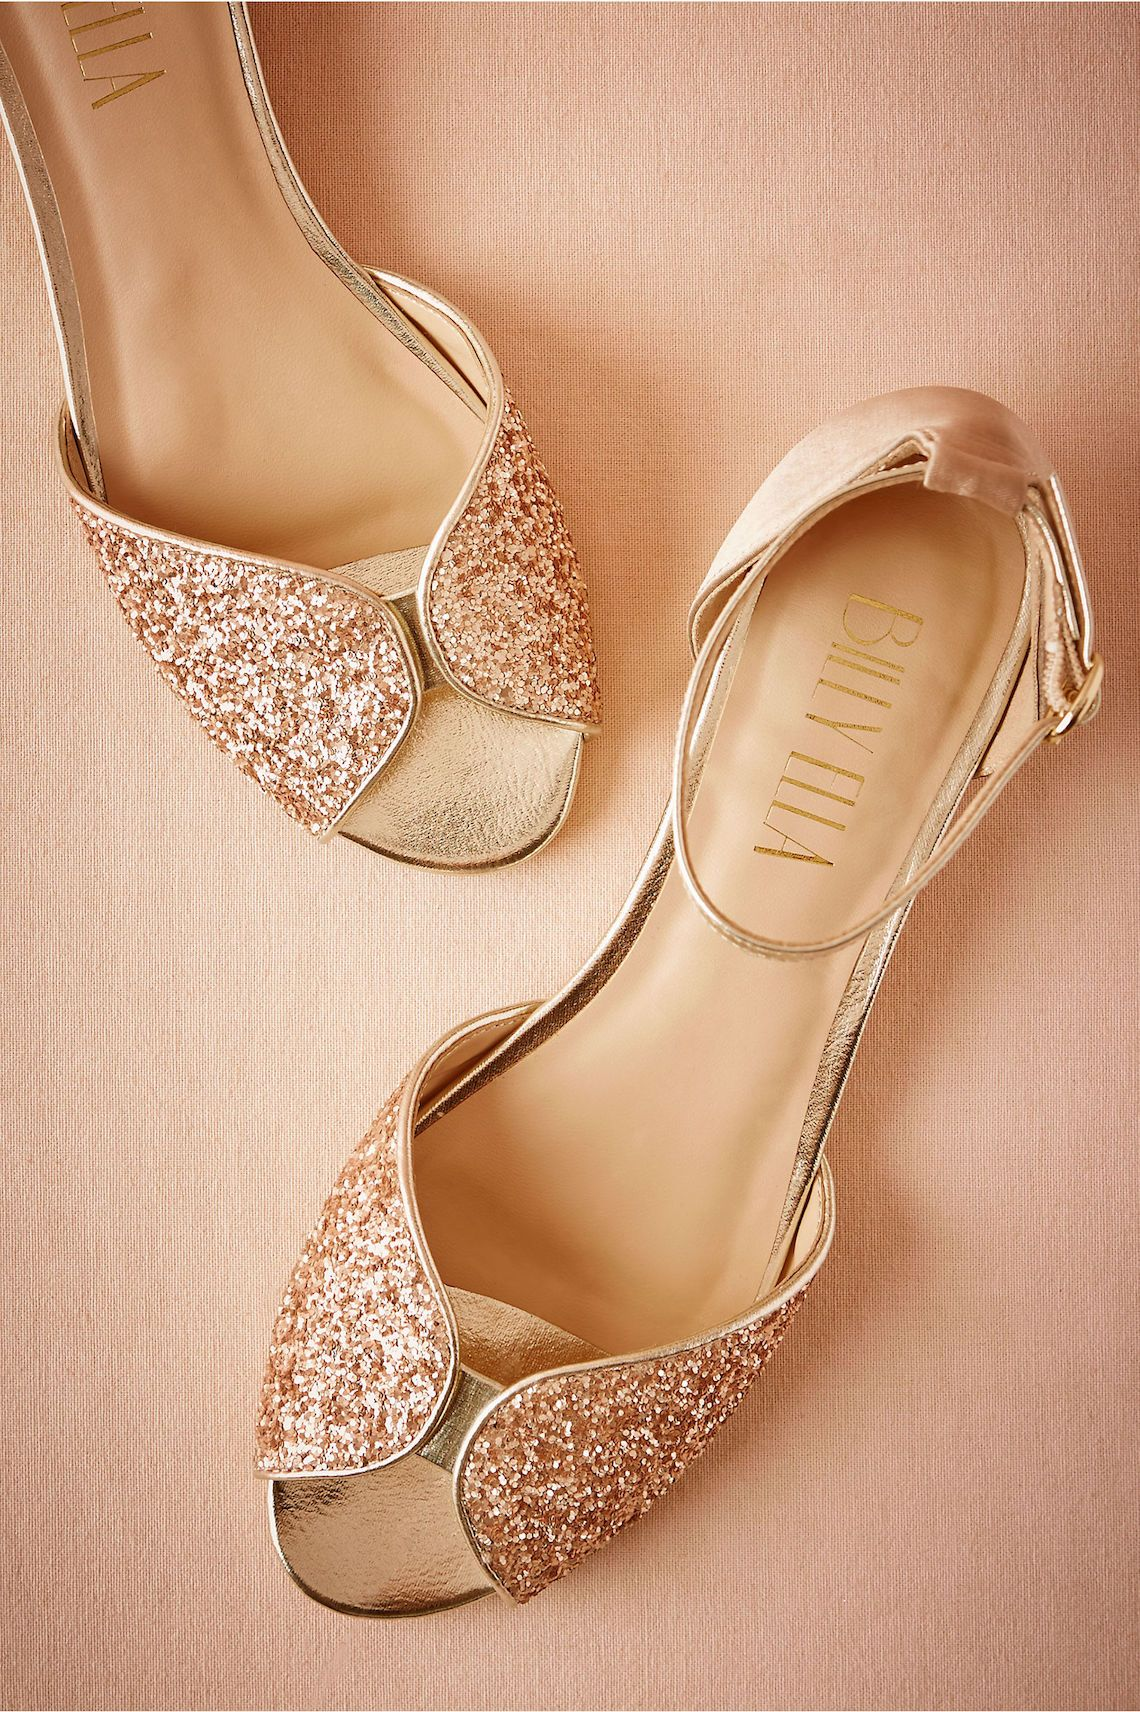 364a6e16337 10 Flat Wedding Shoes (That Are Just As Chic As Heels)